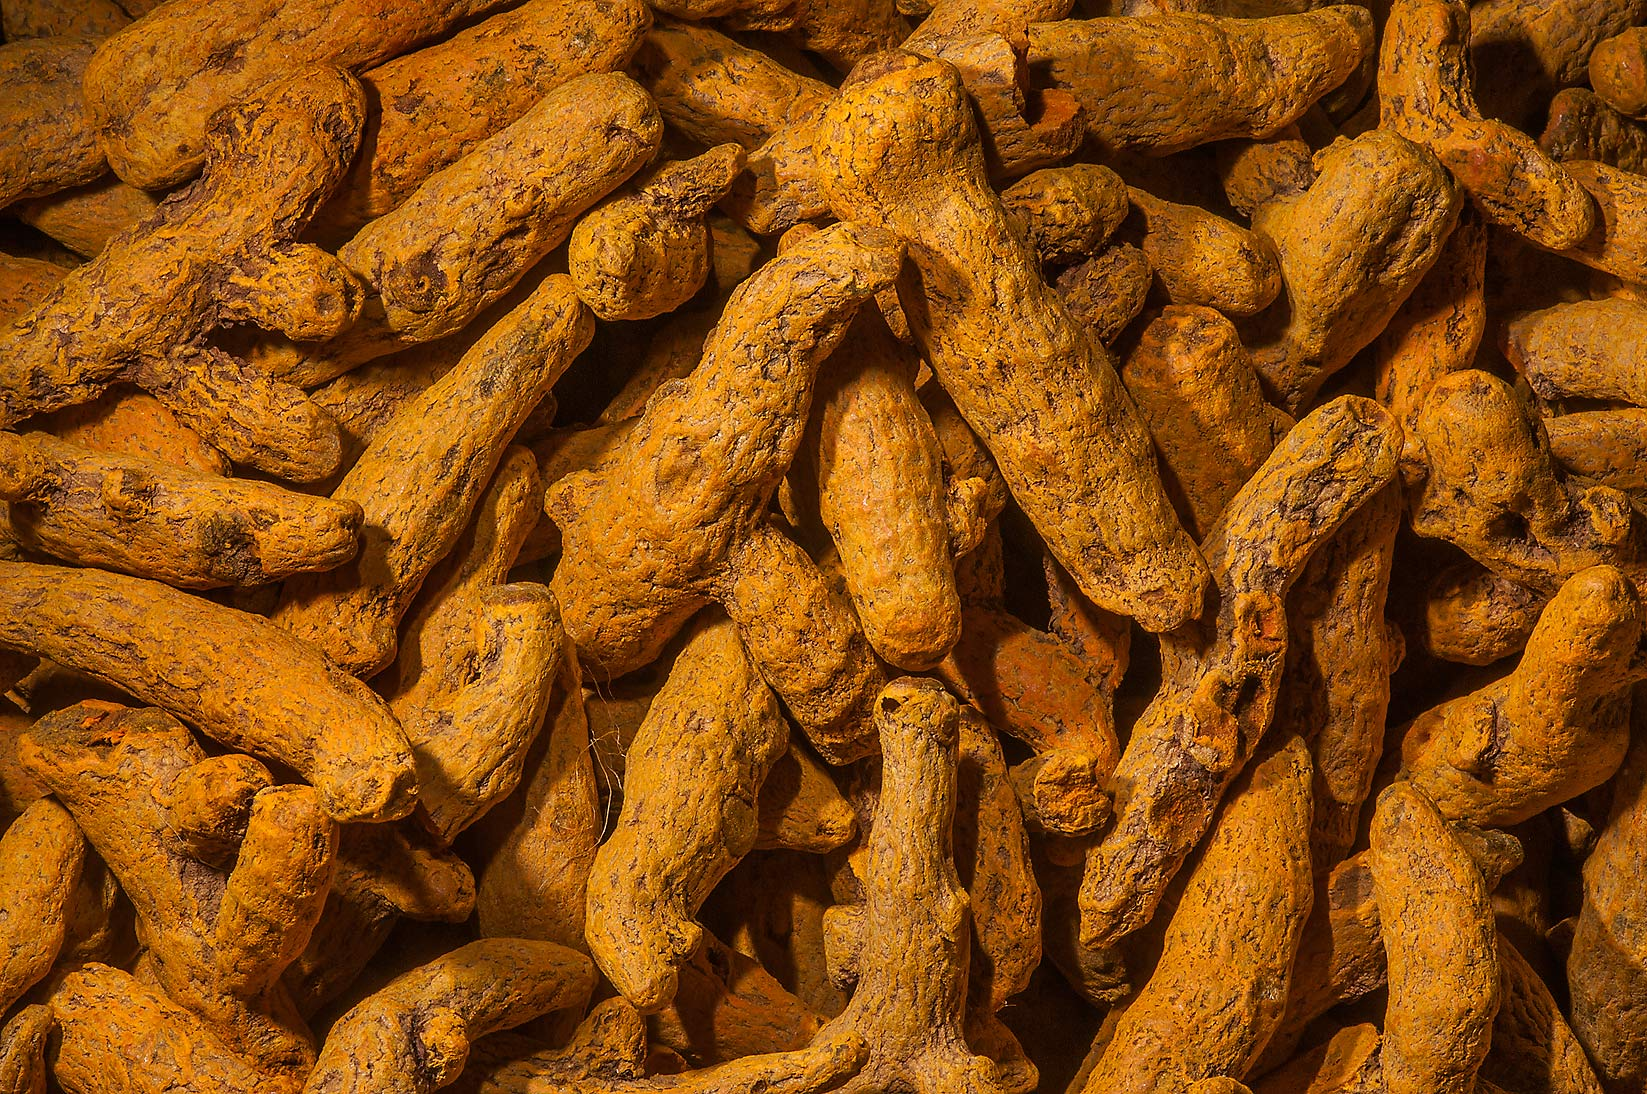 photo 1190 07 dried of snakes for sale in spice section of